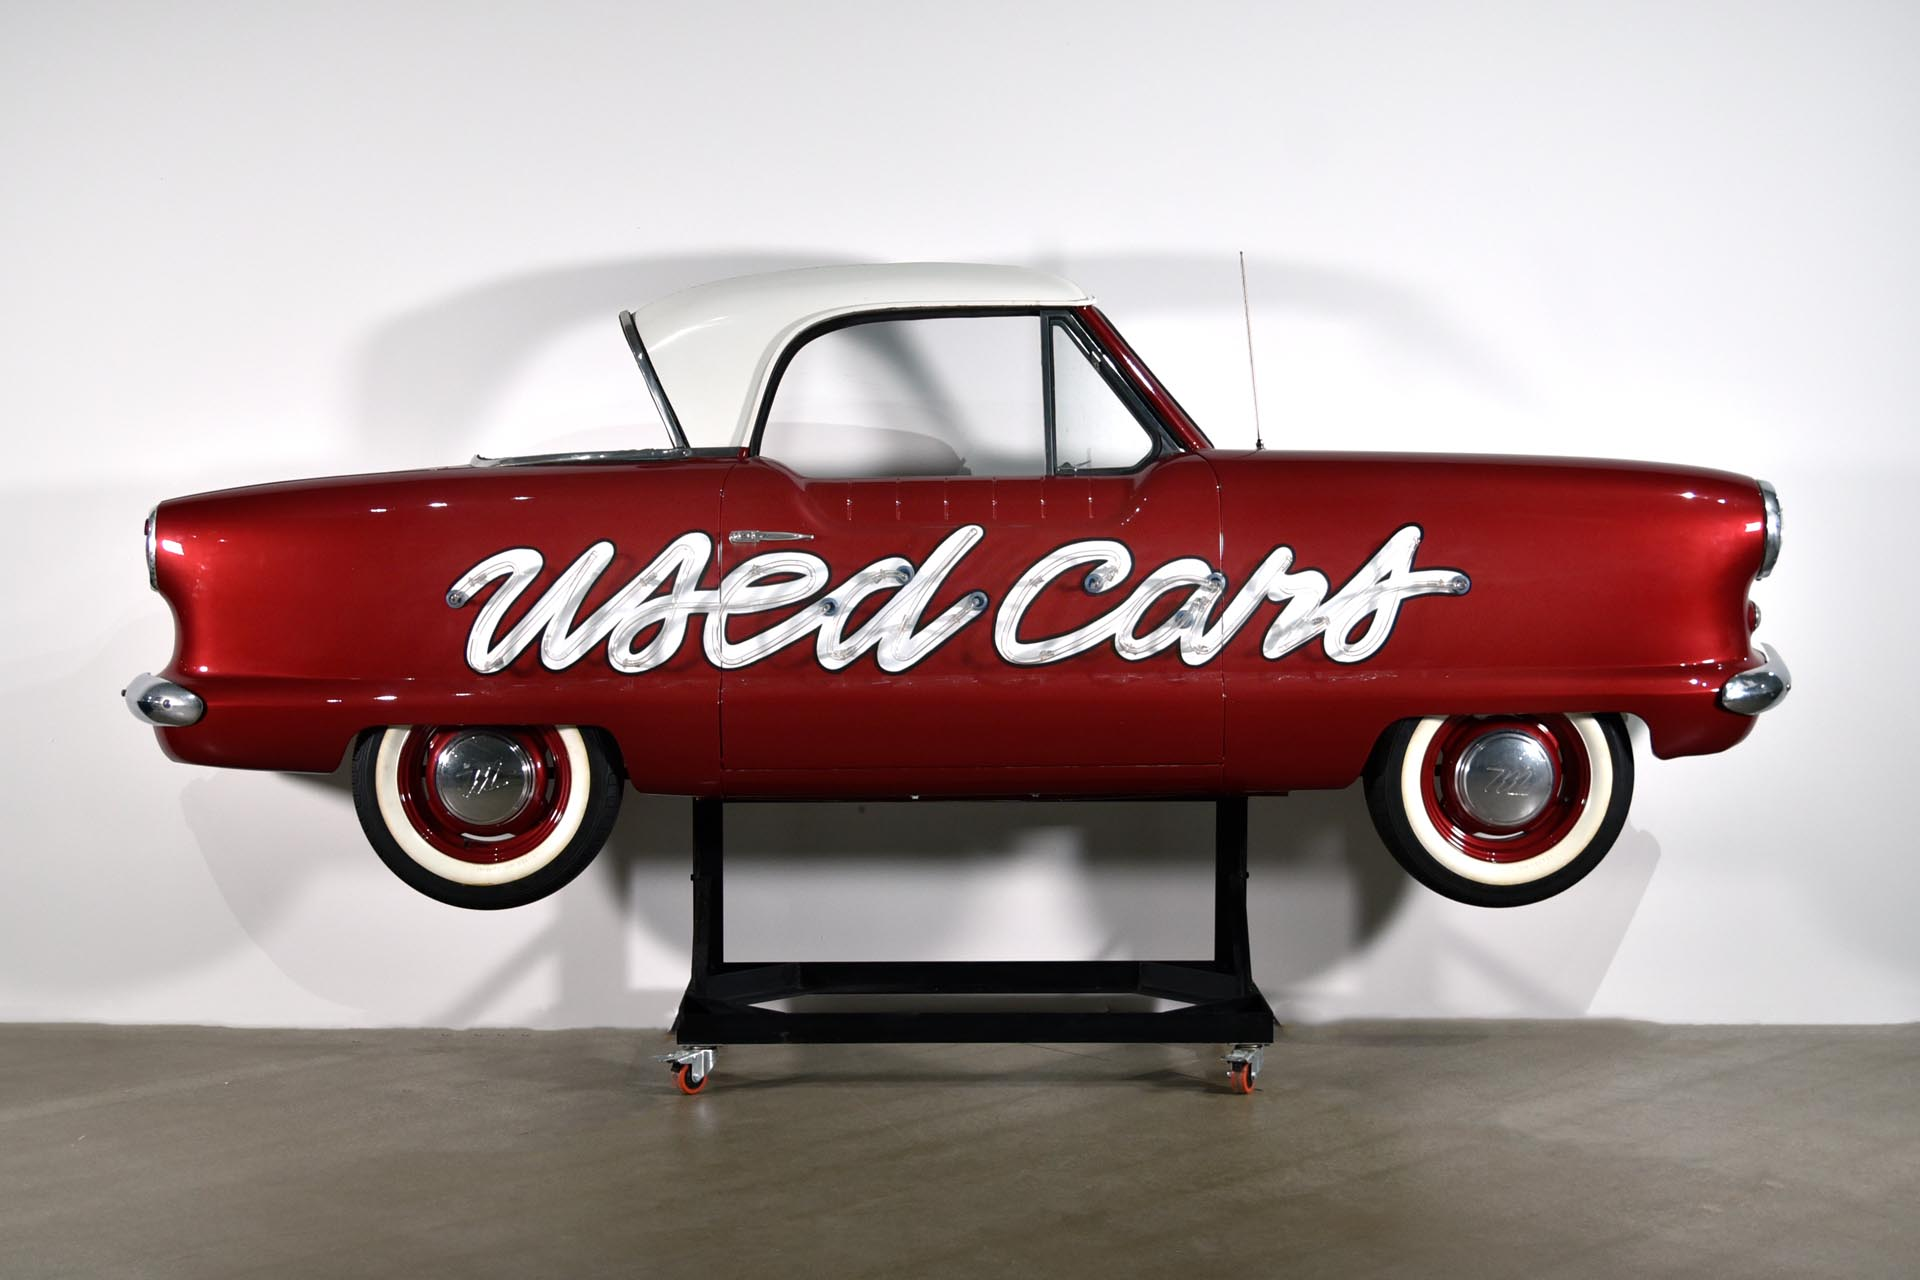 Custom Metropolitan Side of Car USED CARS Neon Sign with Stand or Wall Mount